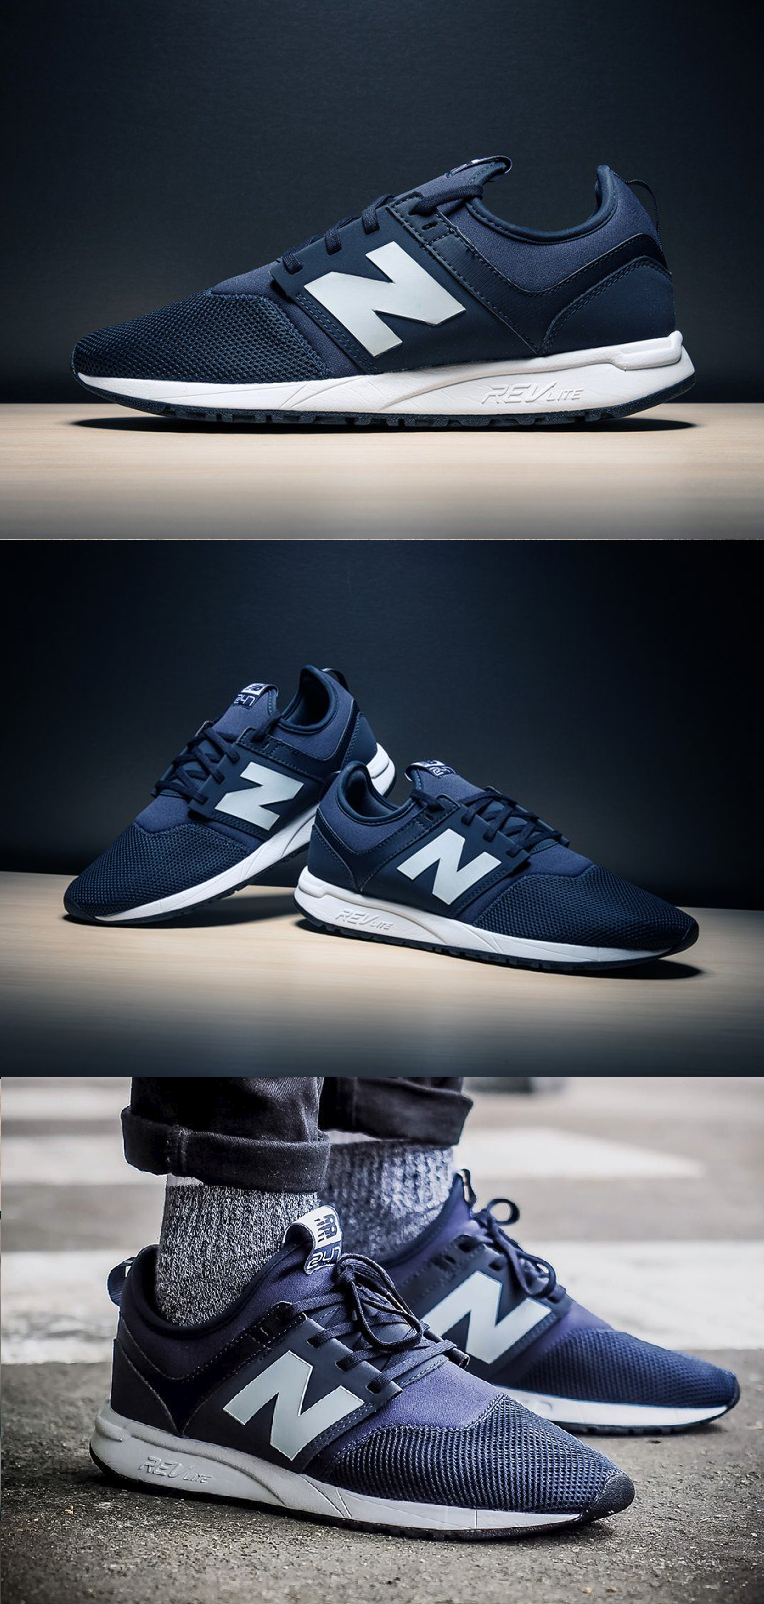 63e7c11c80 NewBalance 247 #Classic #Navy | Newbalance in 2019 | Shoes, New ...